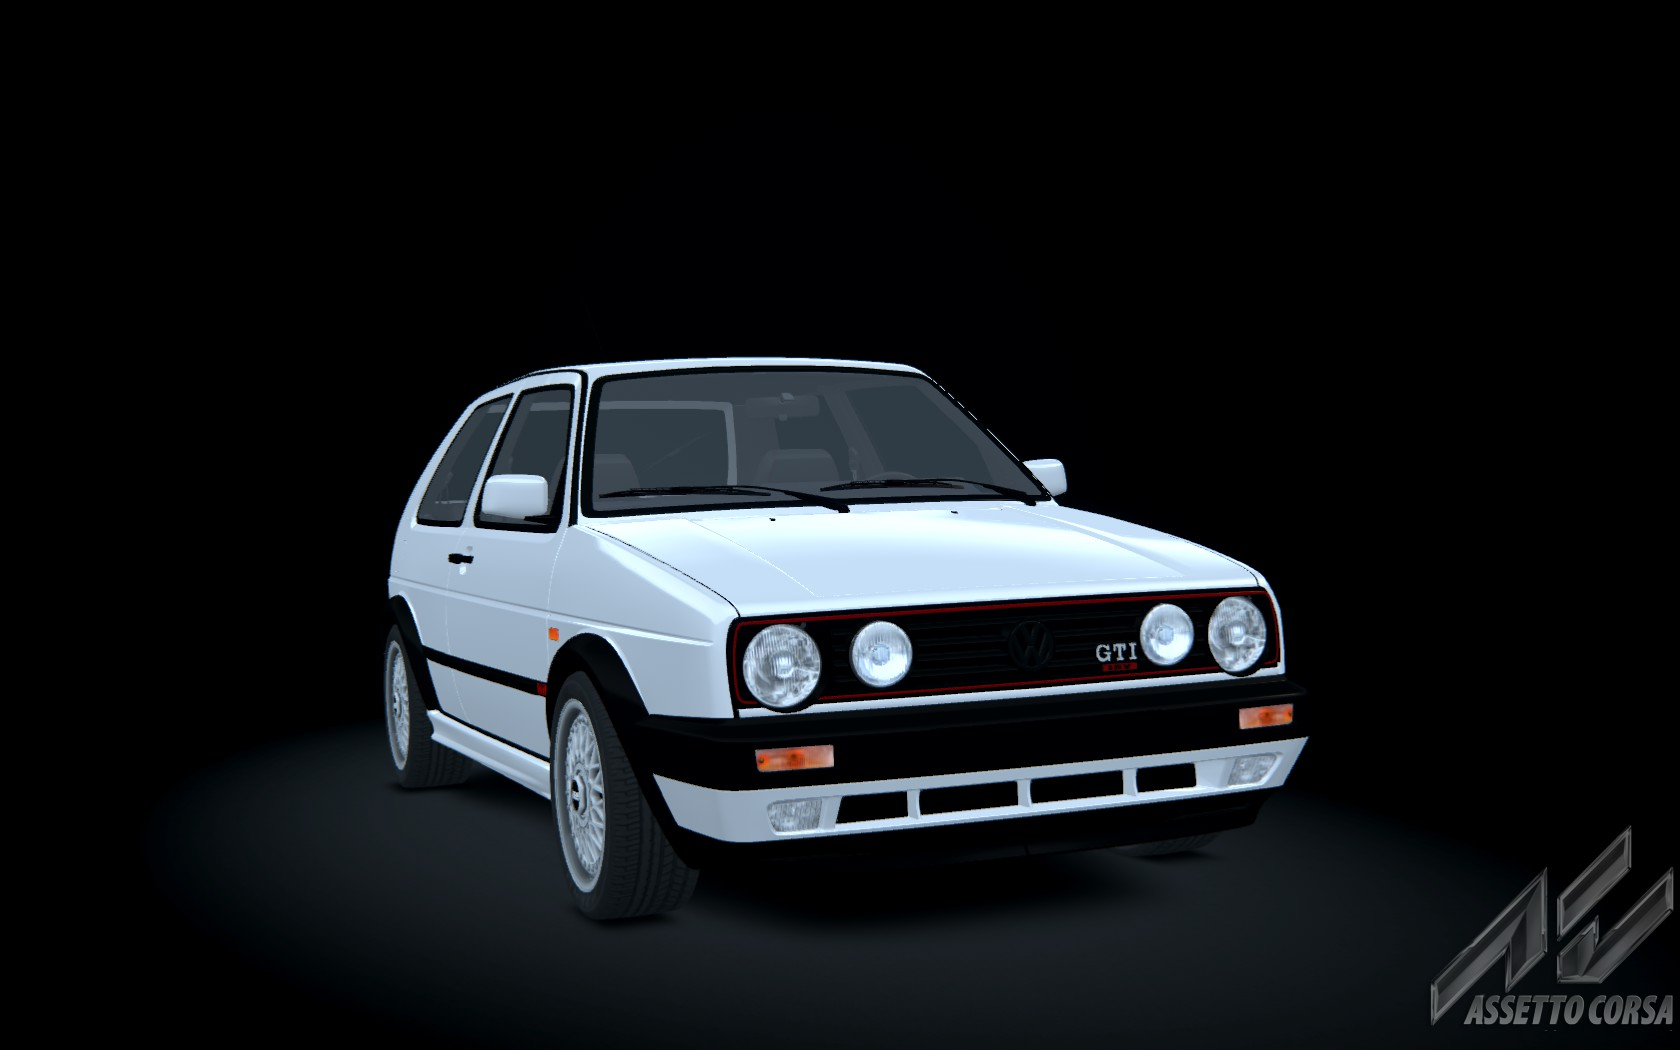 volkswagen golf ii gti 16v volkswagen car detail assetto corsa database. Black Bedroom Furniture Sets. Home Design Ideas